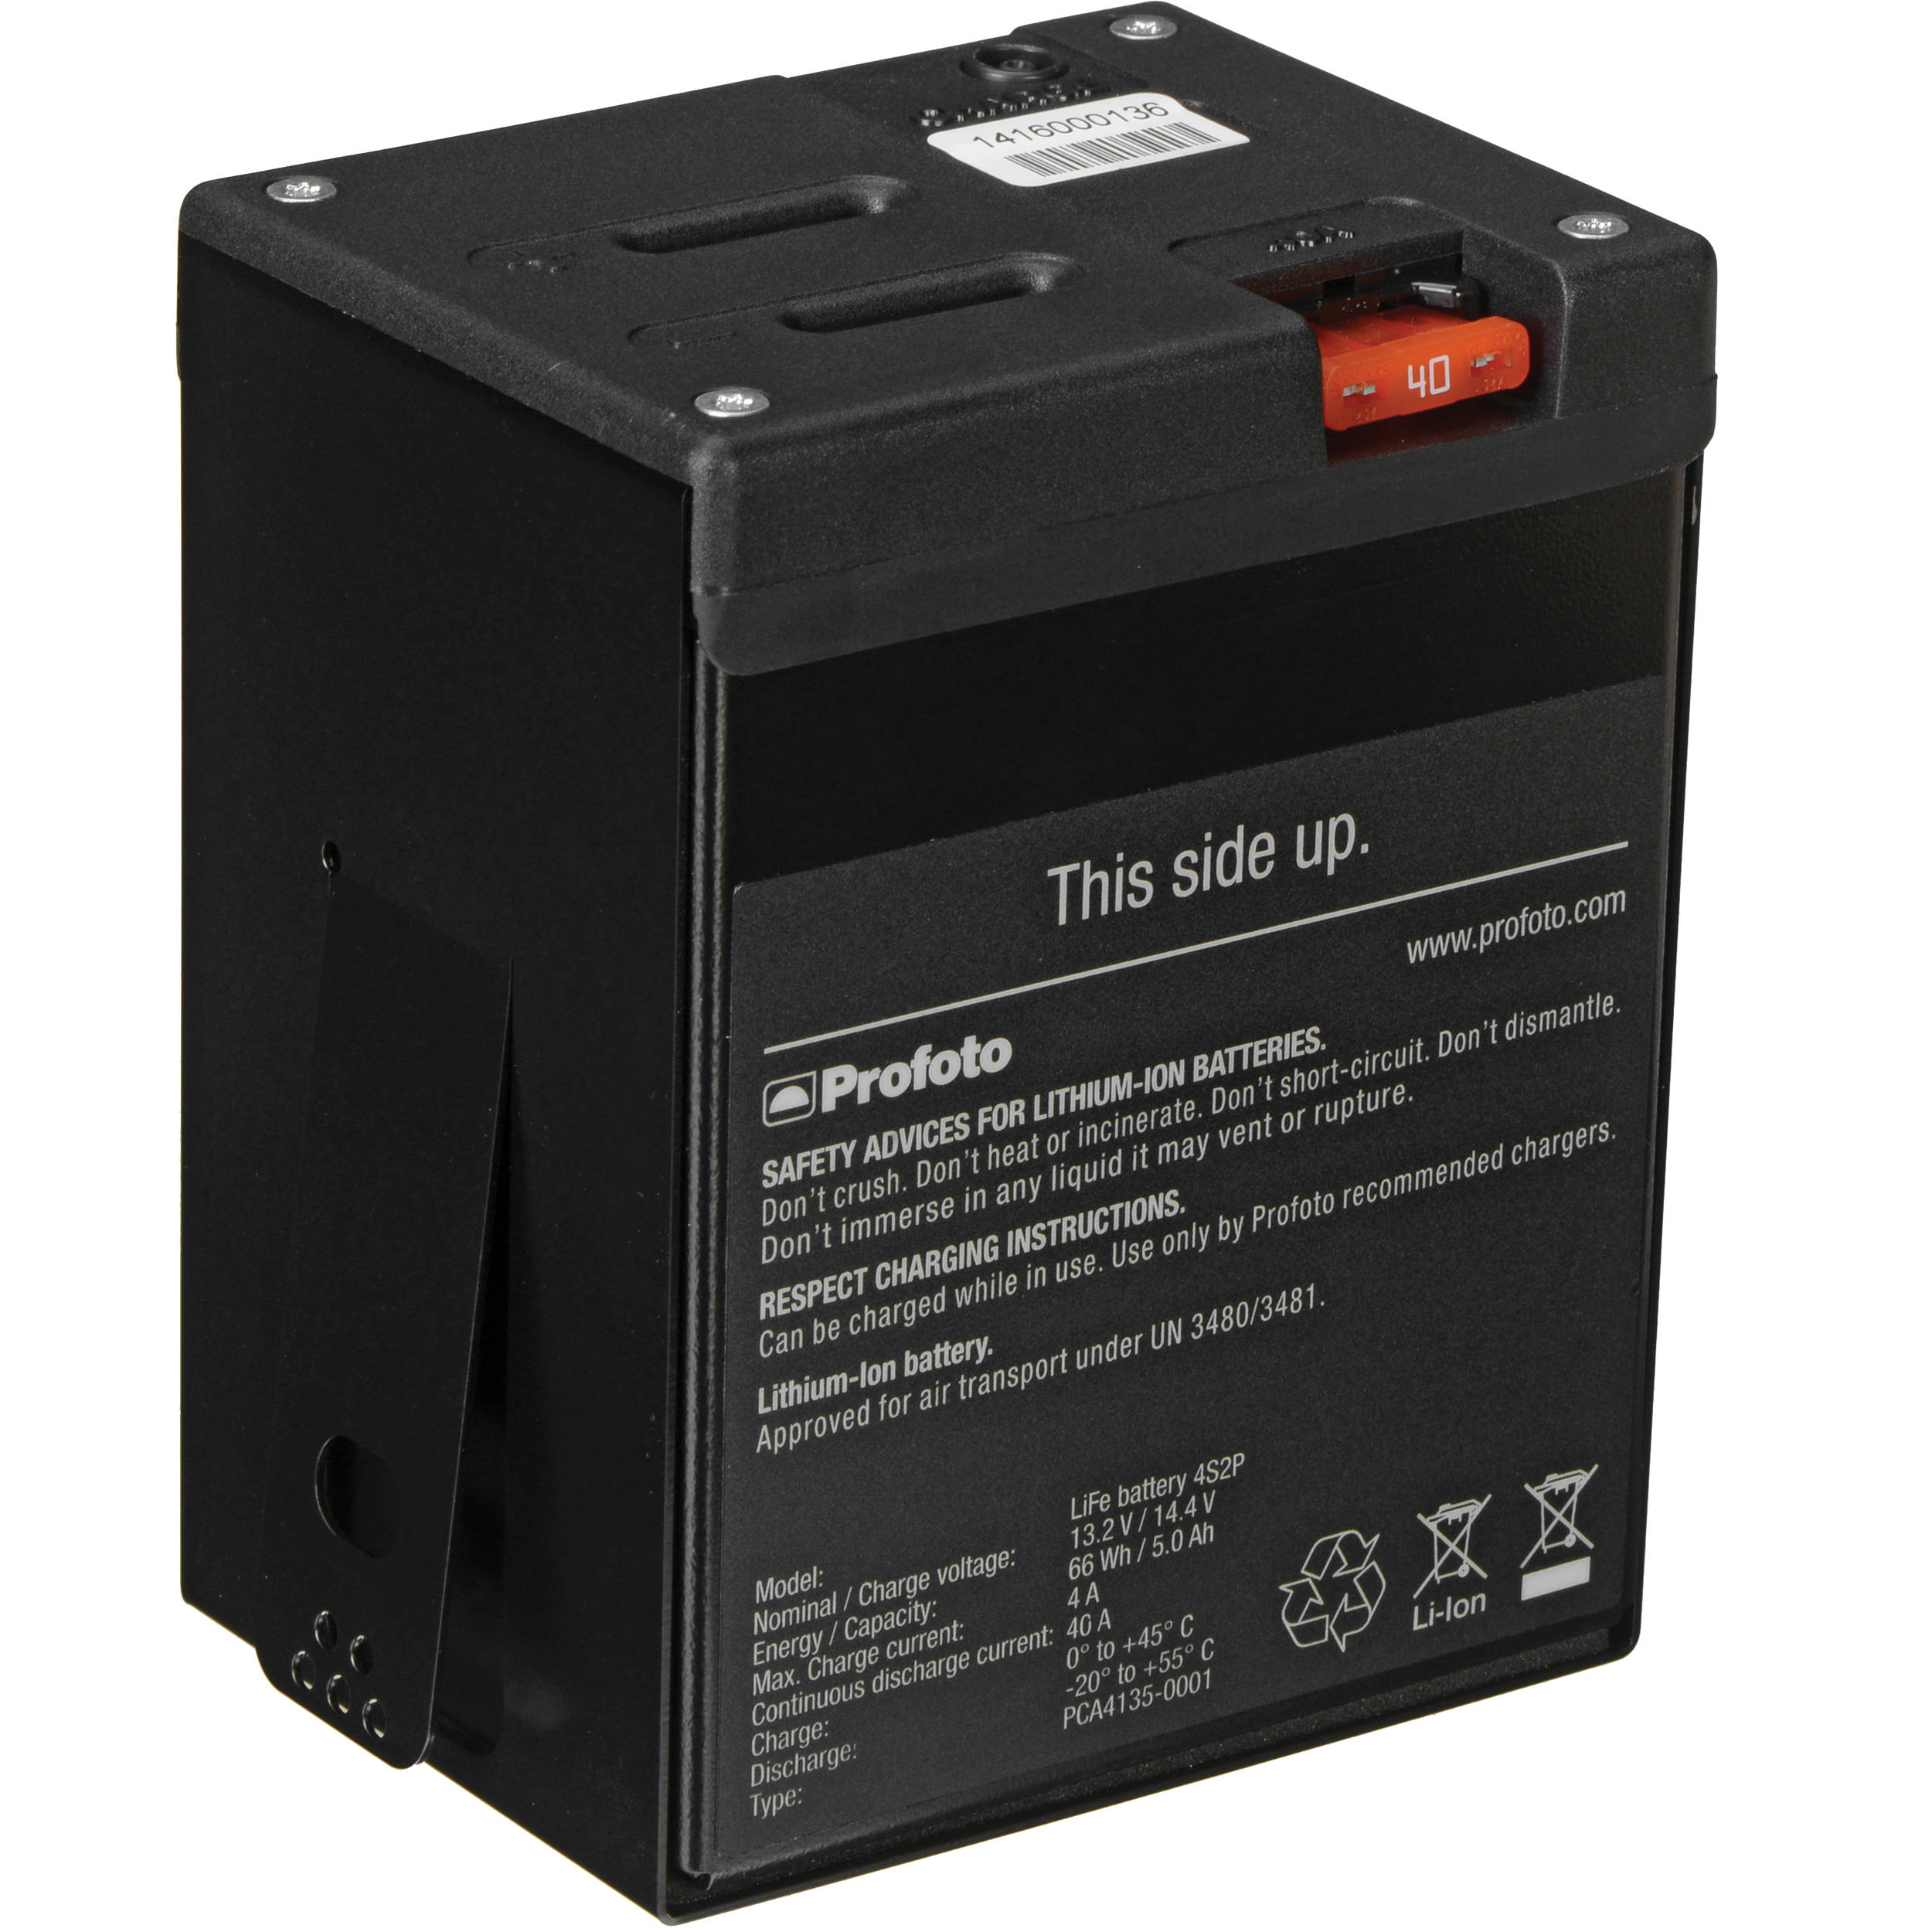 profoto life lithium ion battery for acute b2 600 airs 901106. Black Bedroom Furniture Sets. Home Design Ideas